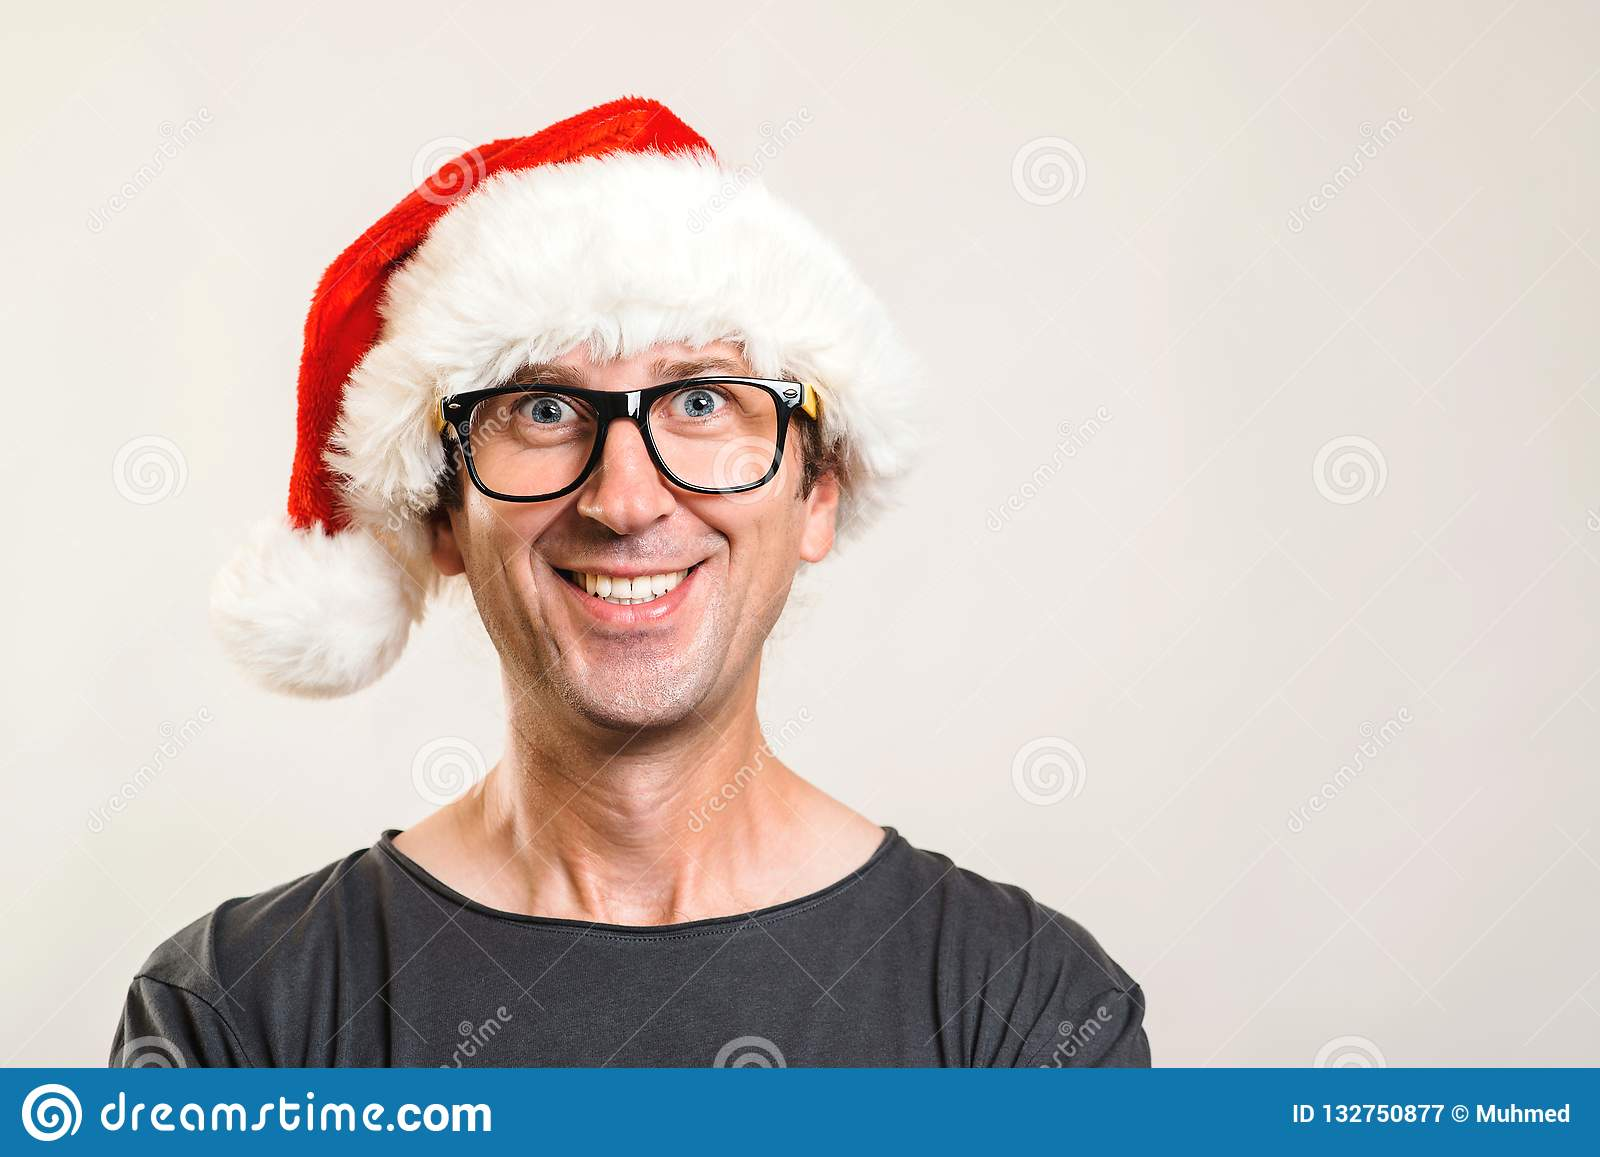 Santa man portrait. Christmas concept. Funny man wearing glasses and christmas hat. Happy New Year. Copy space